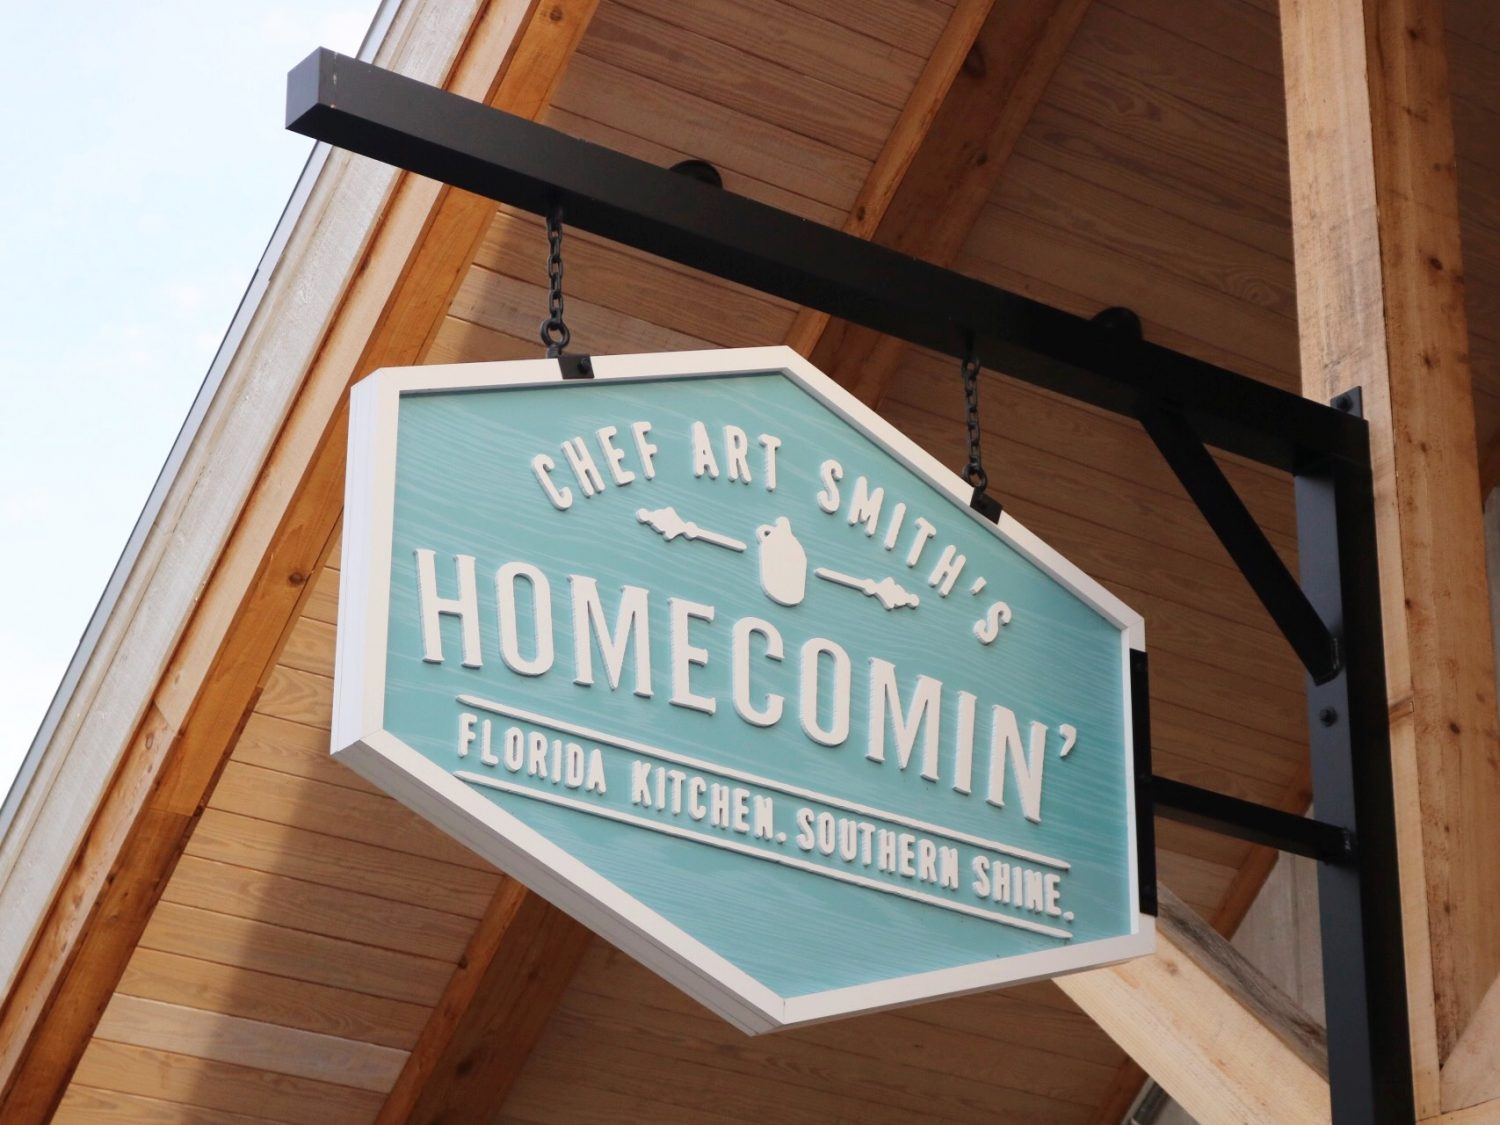 Chef Art Smith's Homecomin' at Disney Springs